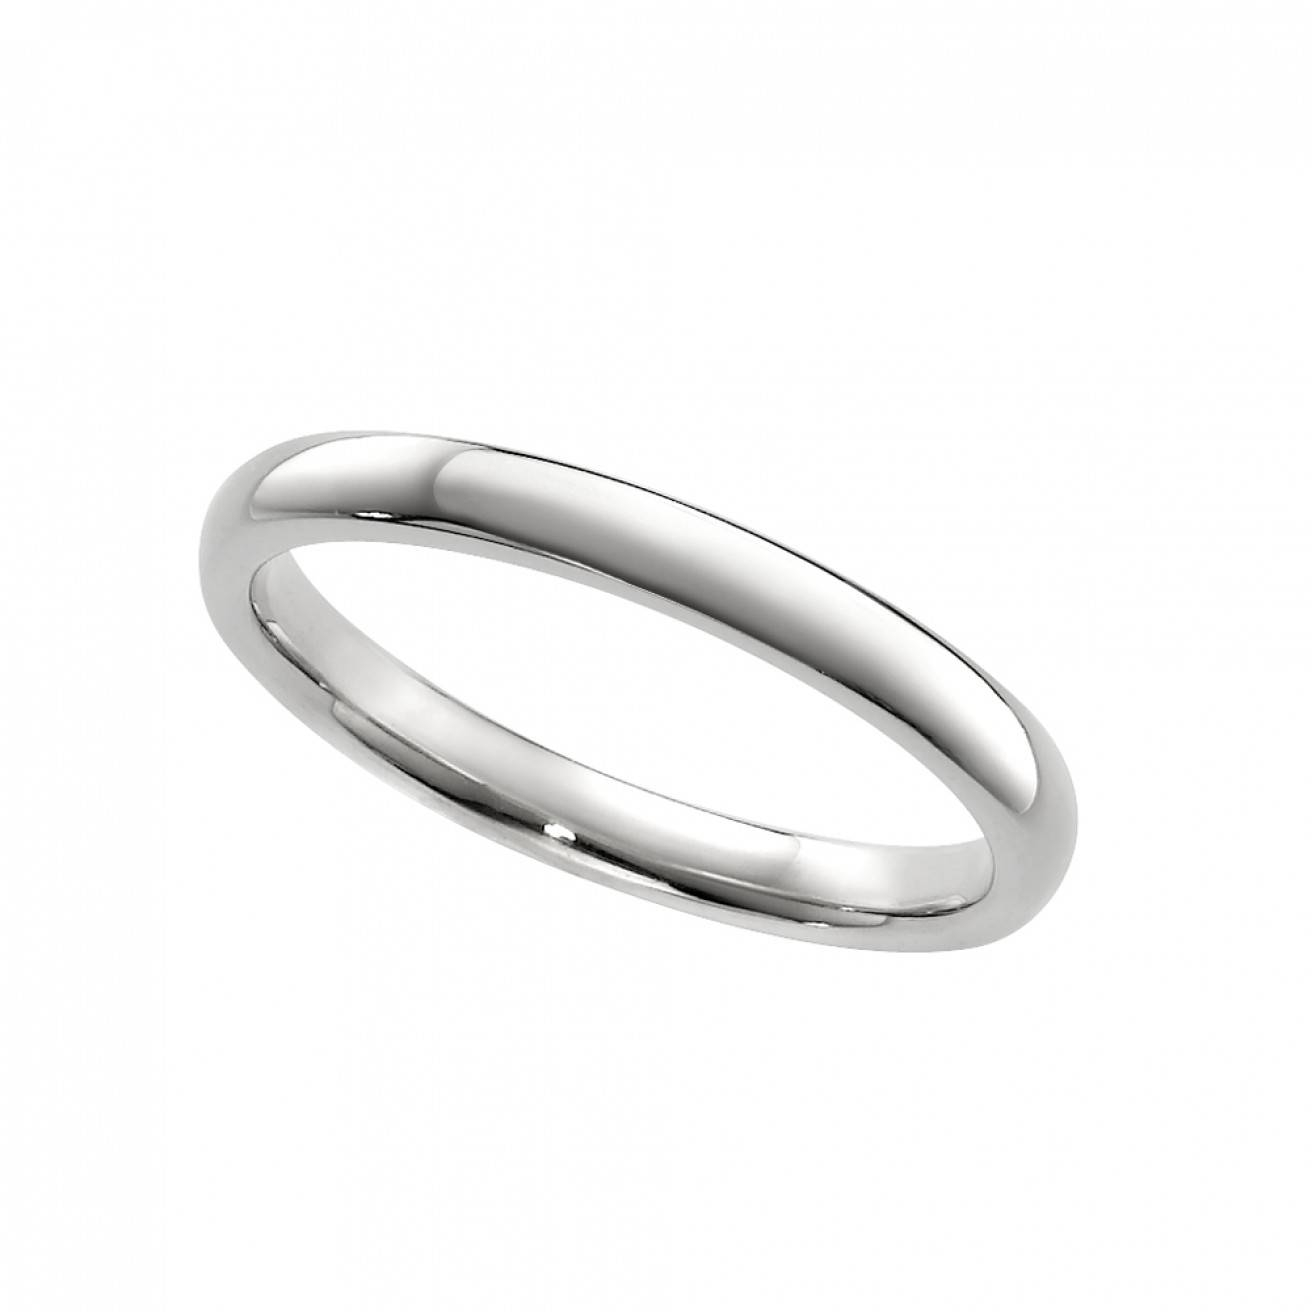 Buy White Gold Wedding Rings Online – Fraser Hart Intended For Current Gold And White Gold Wedding Bands (View 3 of 15)